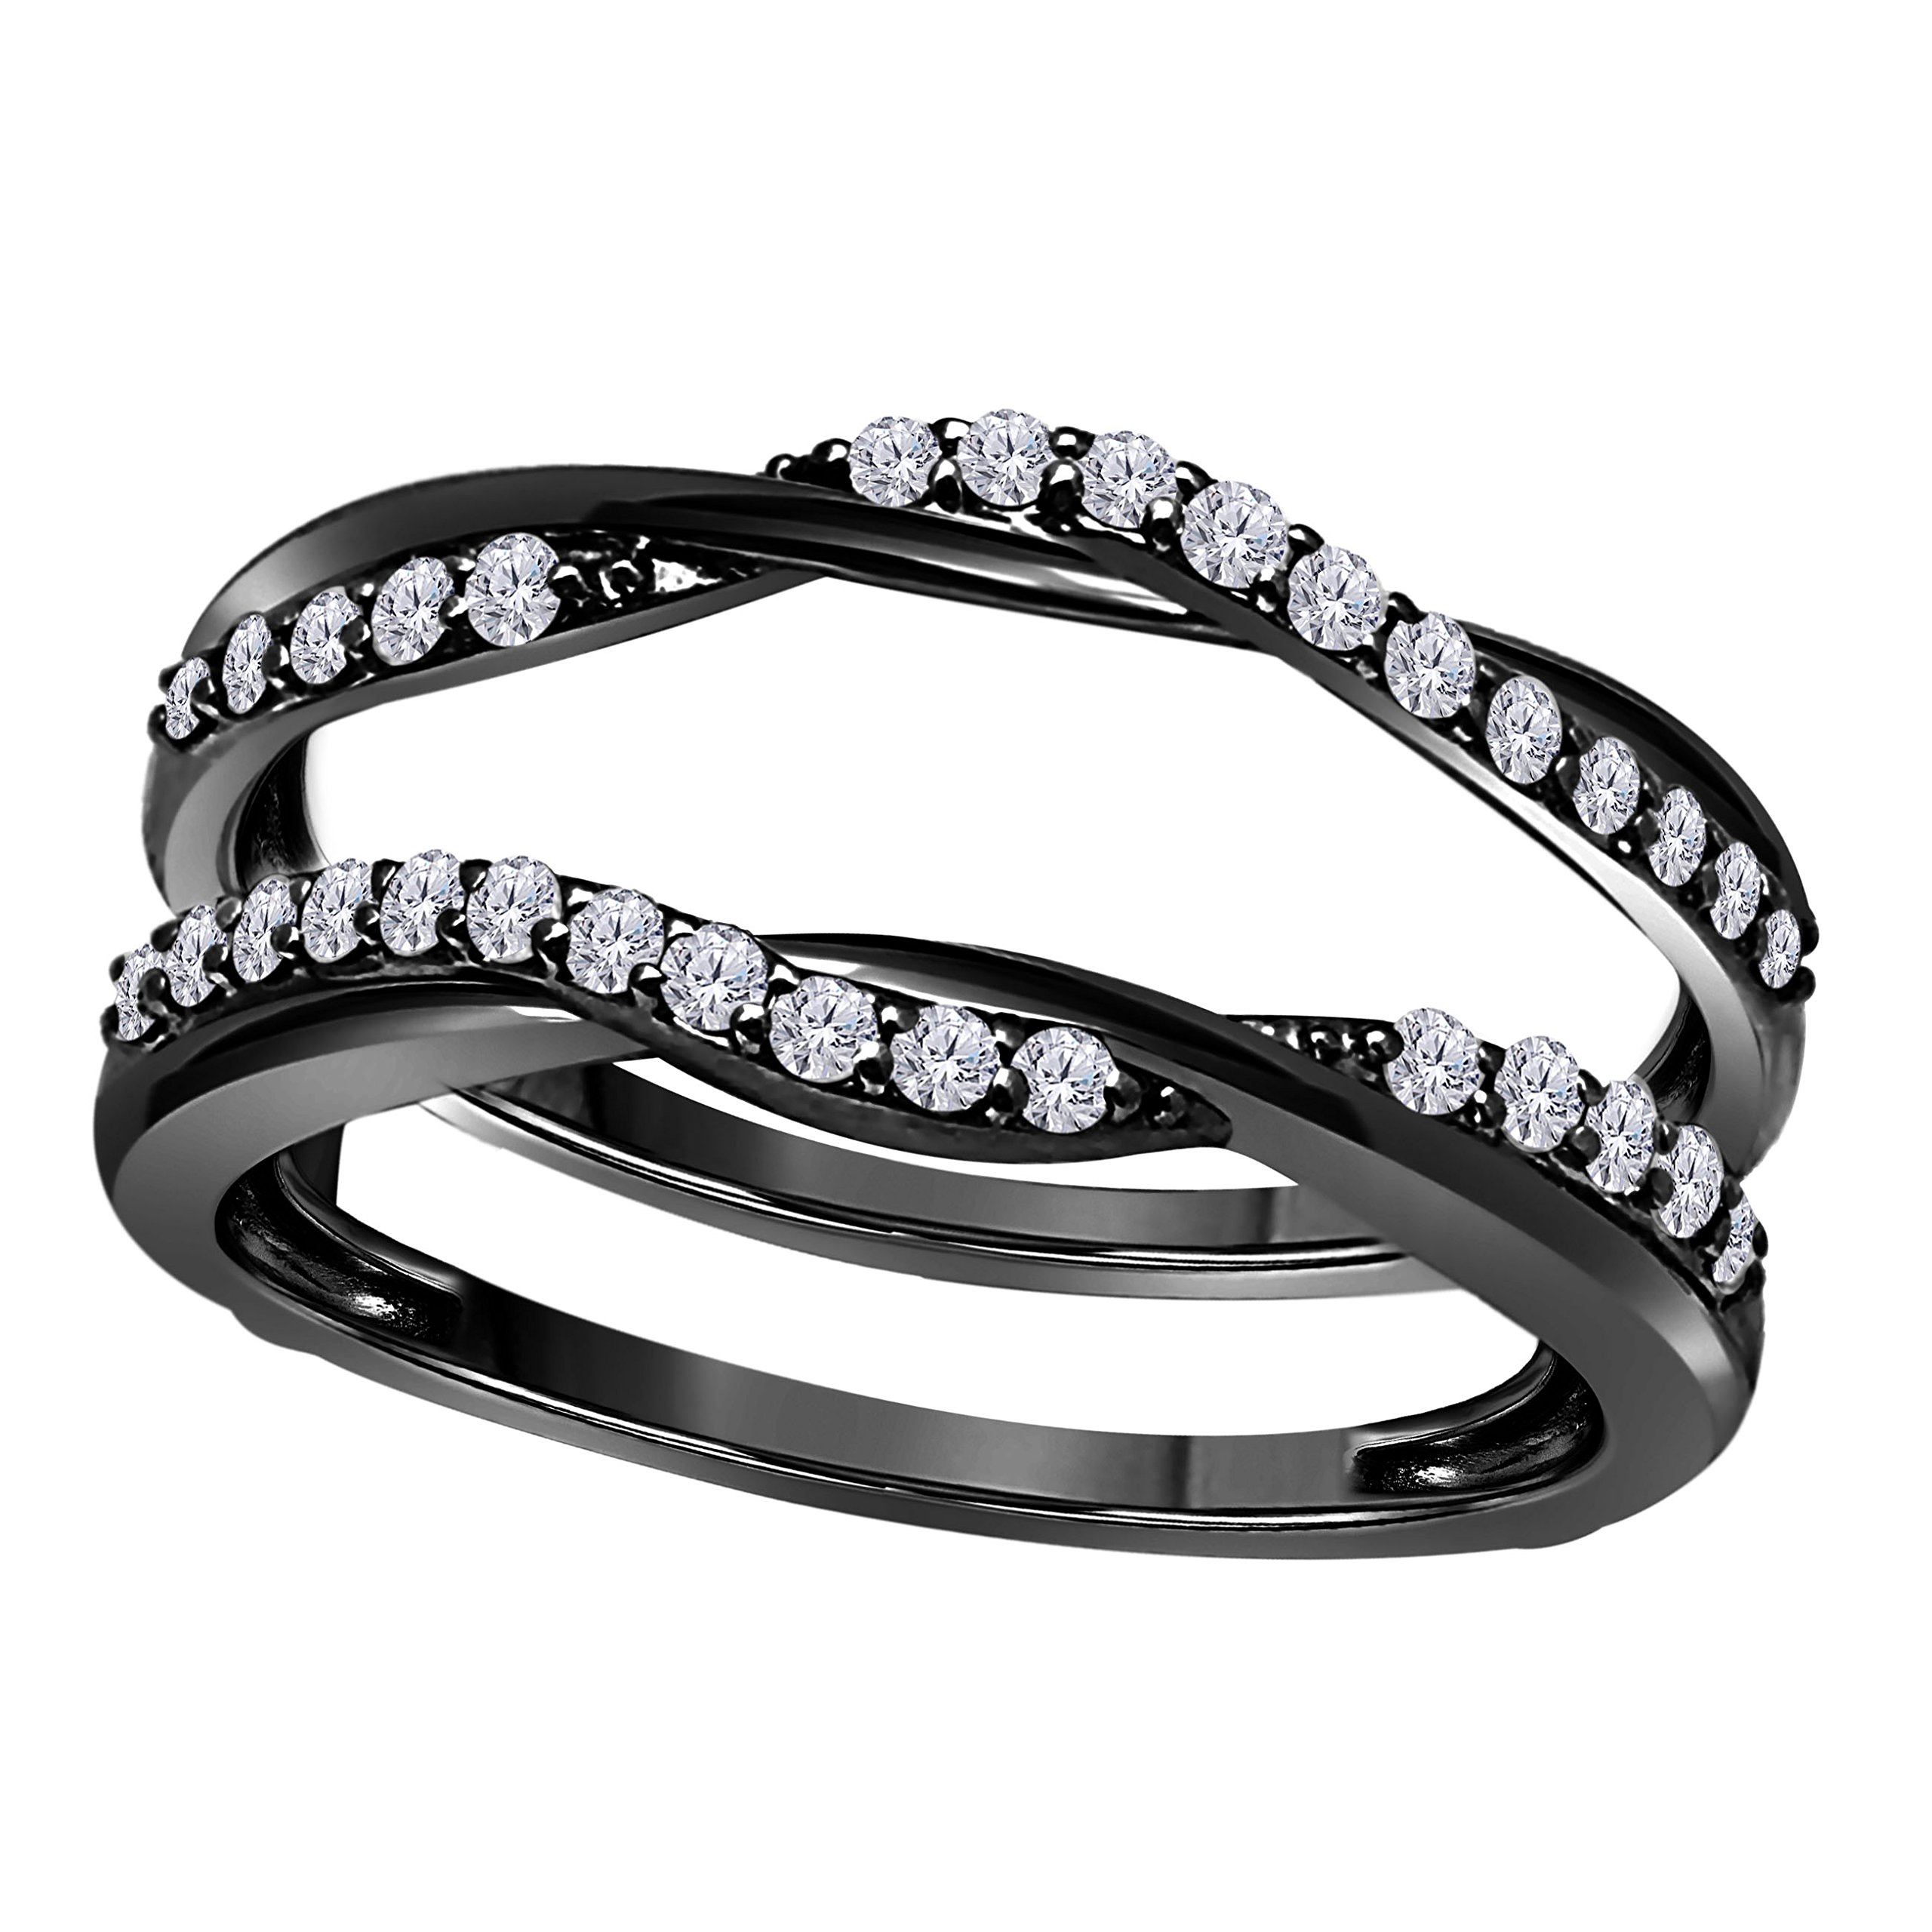 14K Black Gold Plated Delicate Bypass Infinity Style Vintage Wedding Ring Guard Enhancer with Cubic Zirconia (0.50 ct. tw.)